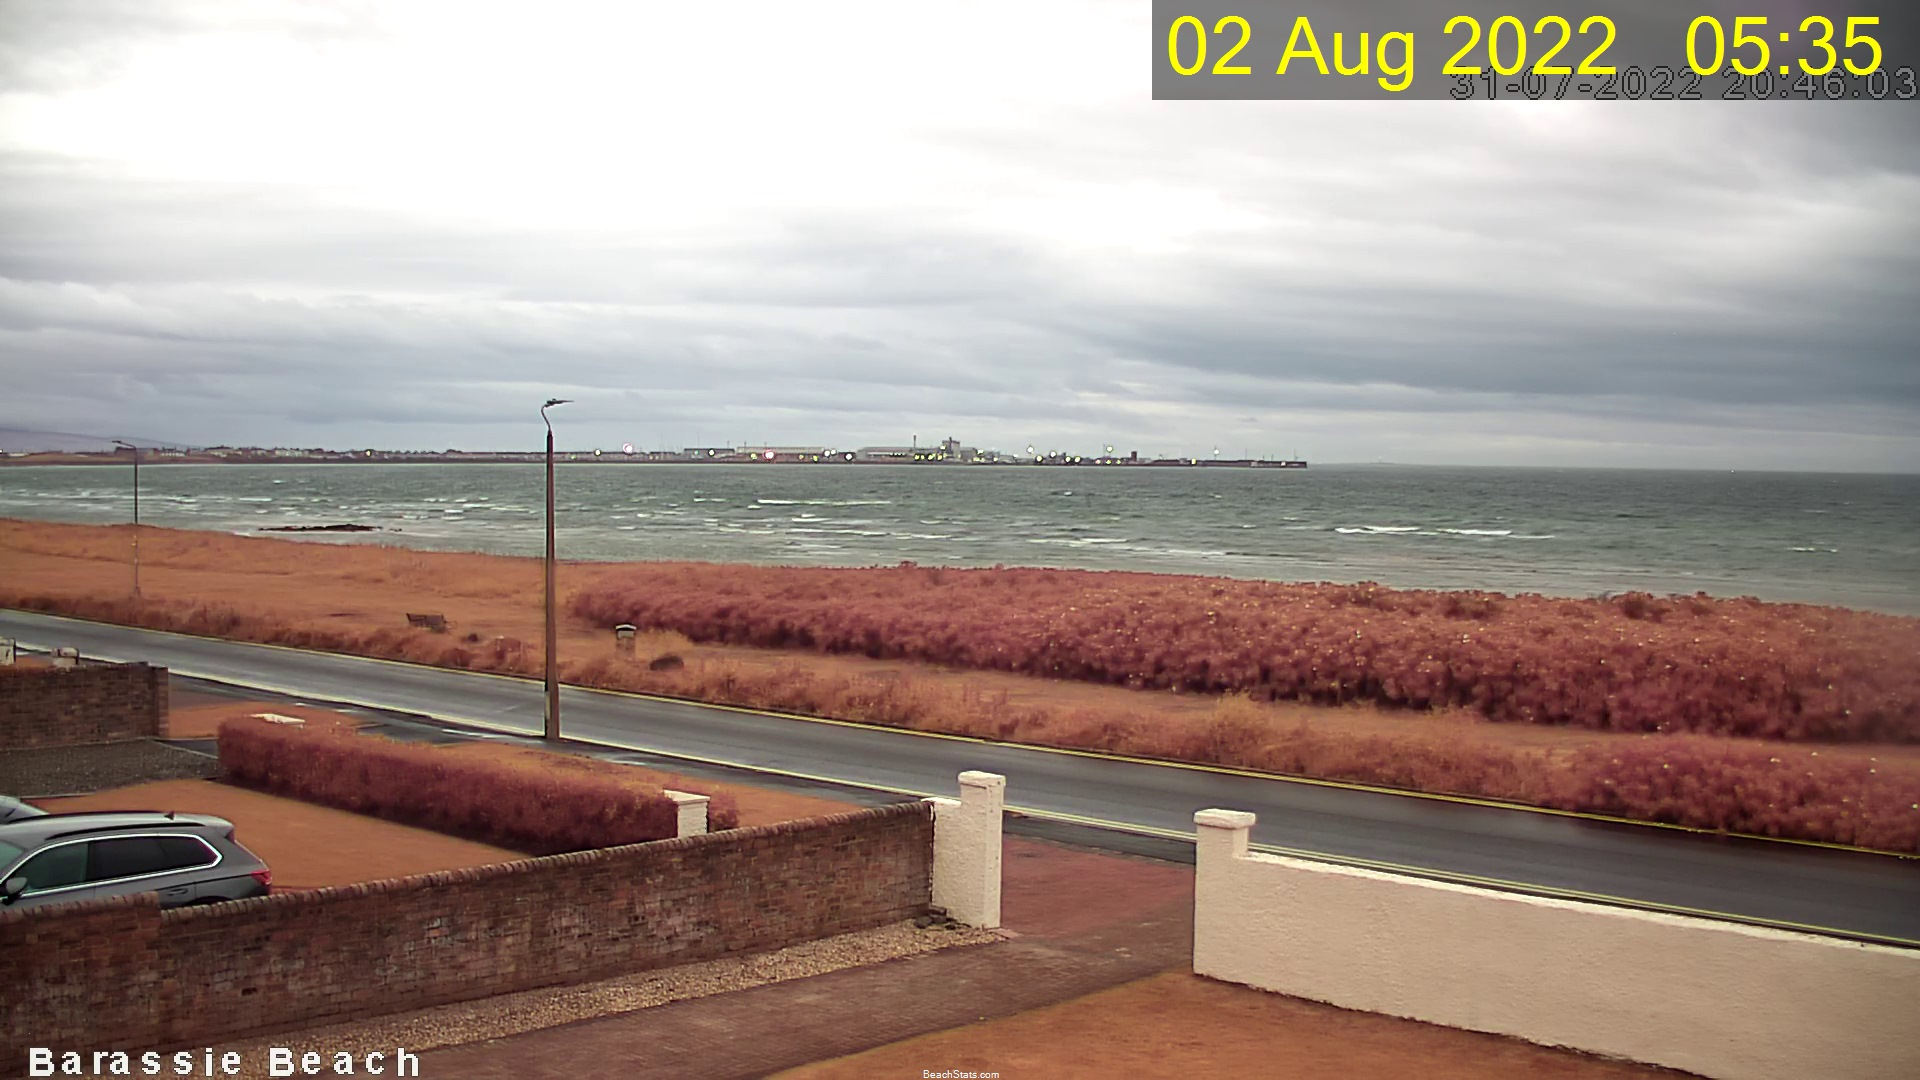 Barassie Beach WebCam